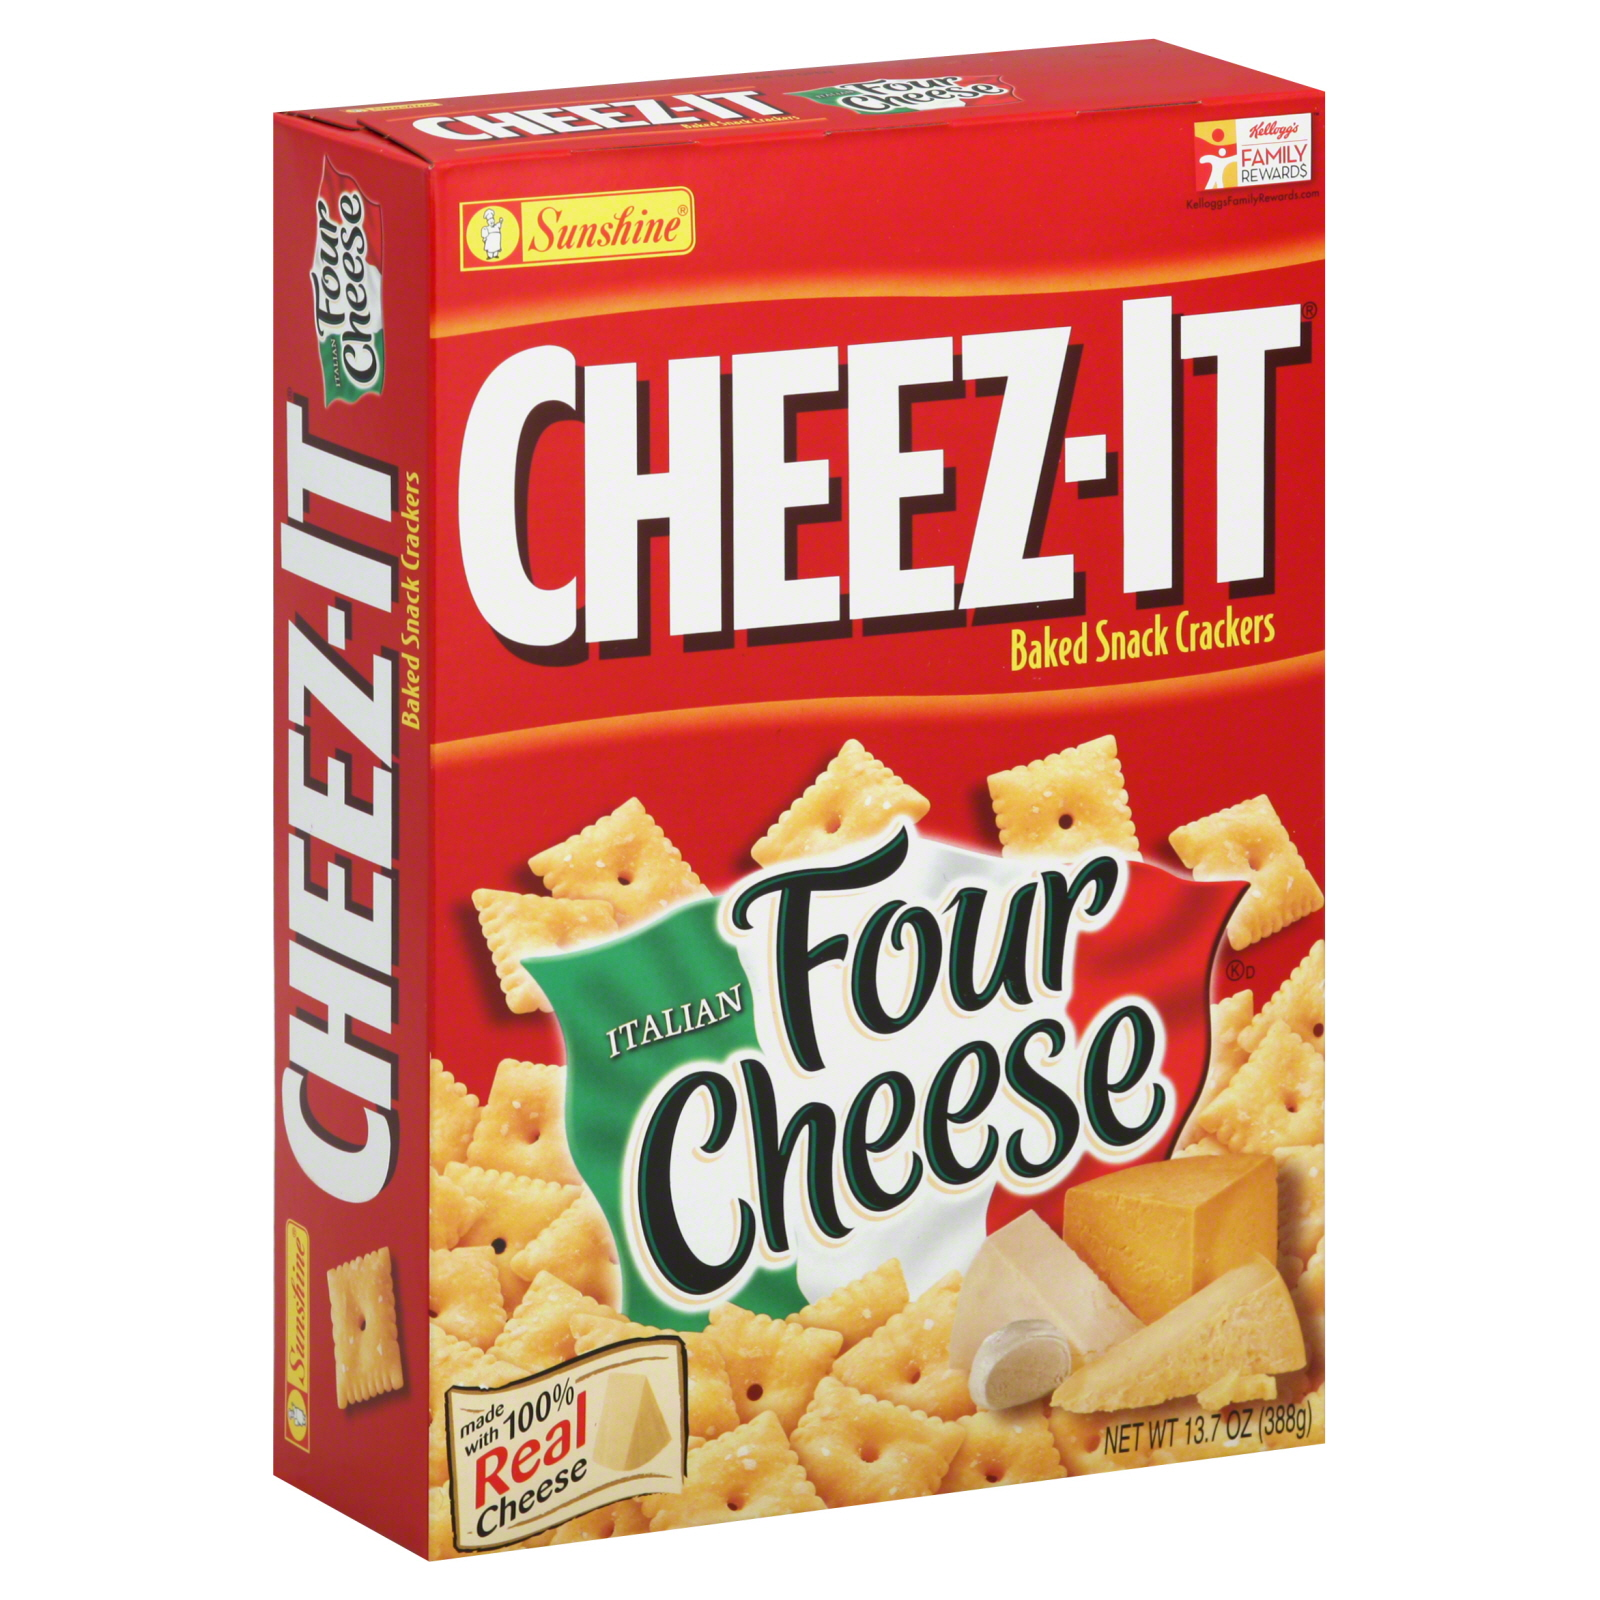 Cheezit Baked Snack Crackers Italian Four Cheese 137